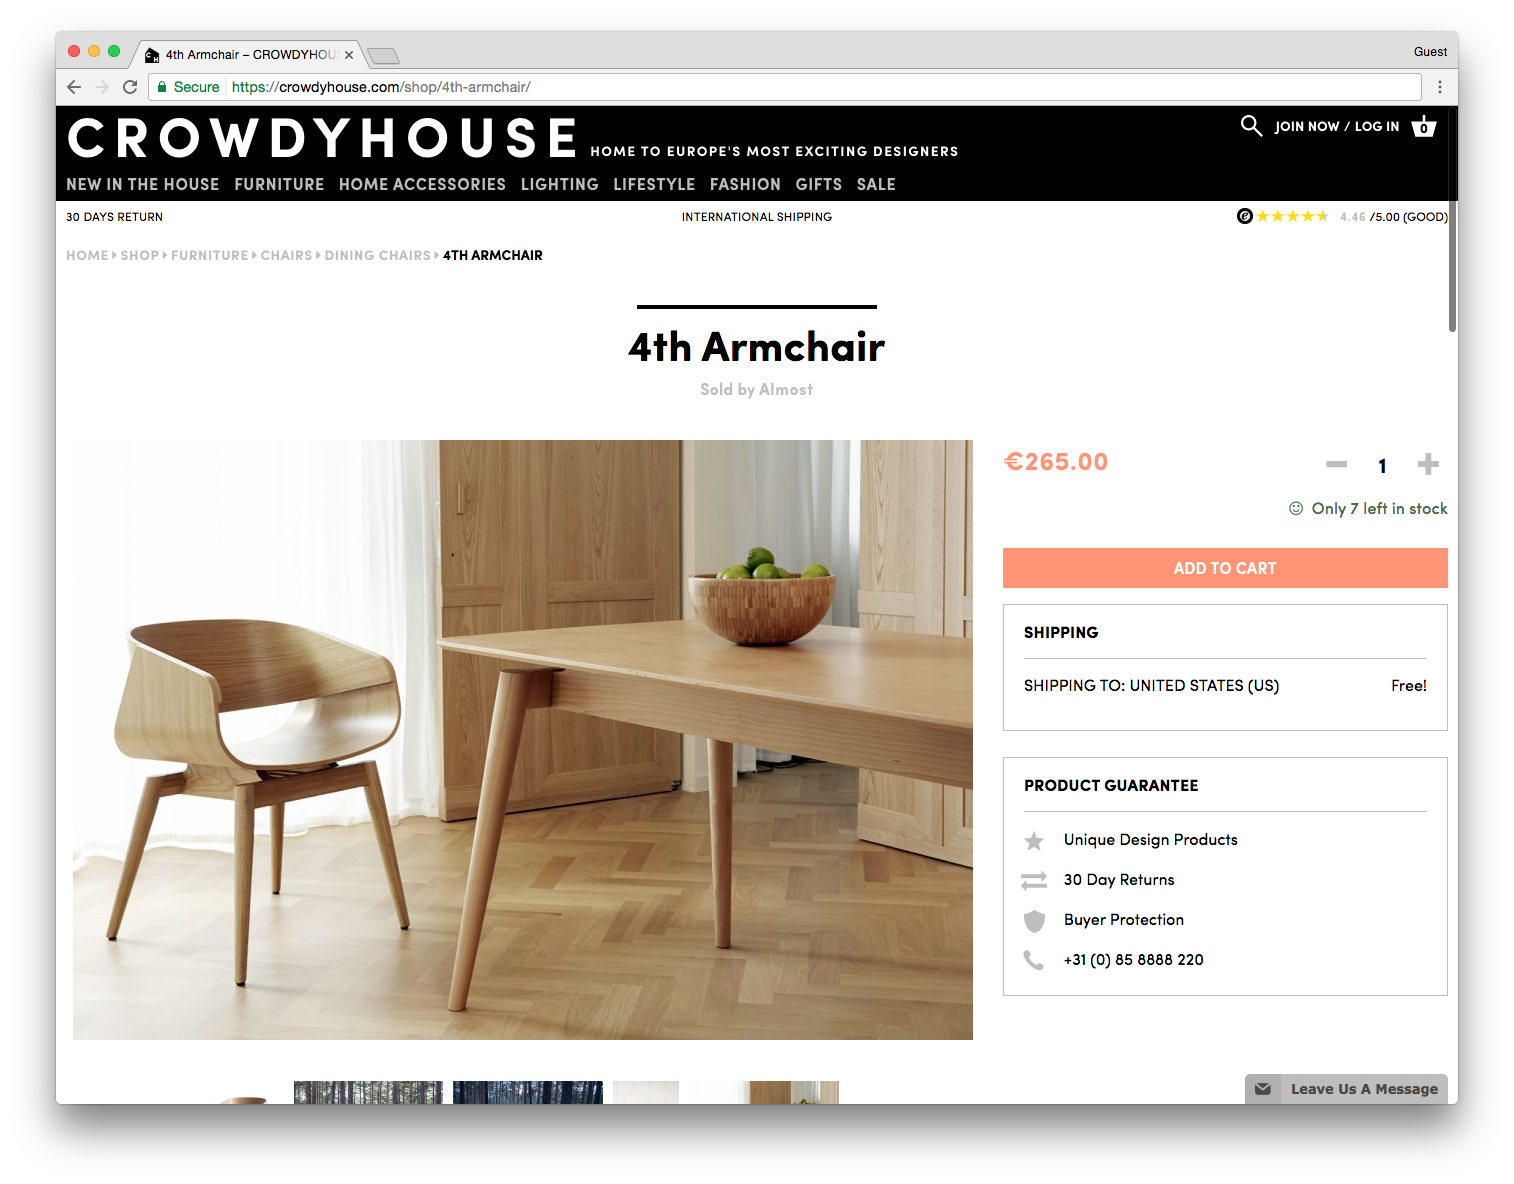 CROWDYHOUSE 4th Armchair Sold by Almost